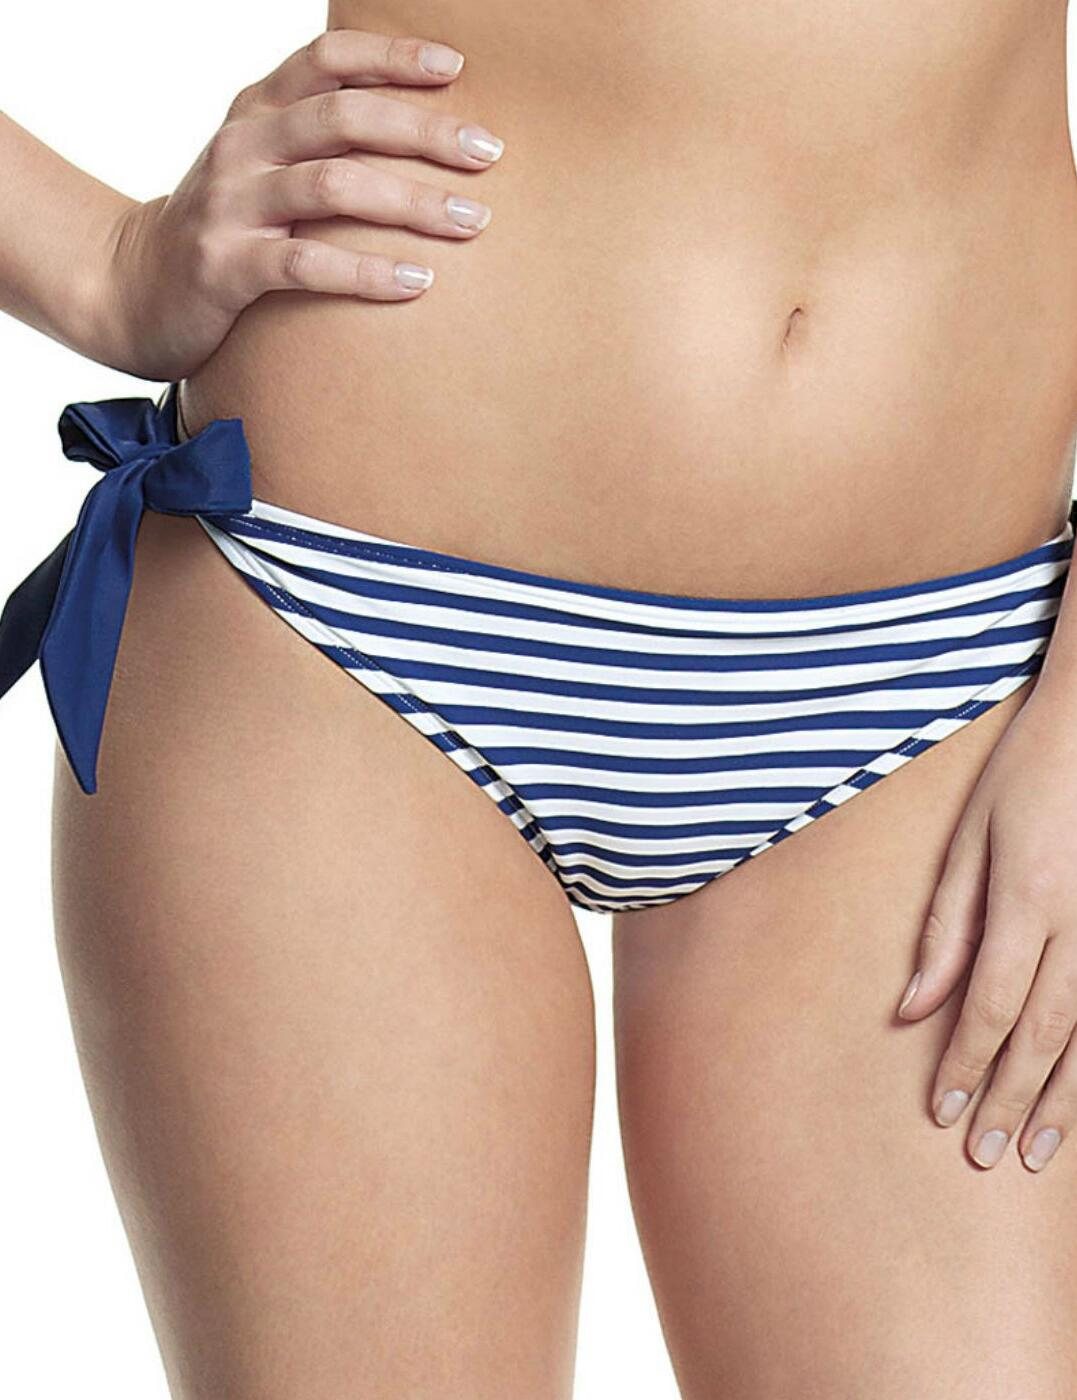 CW0068 Cleo Lucille Tie Side Bikini Brief - CW0068 Nautical Print